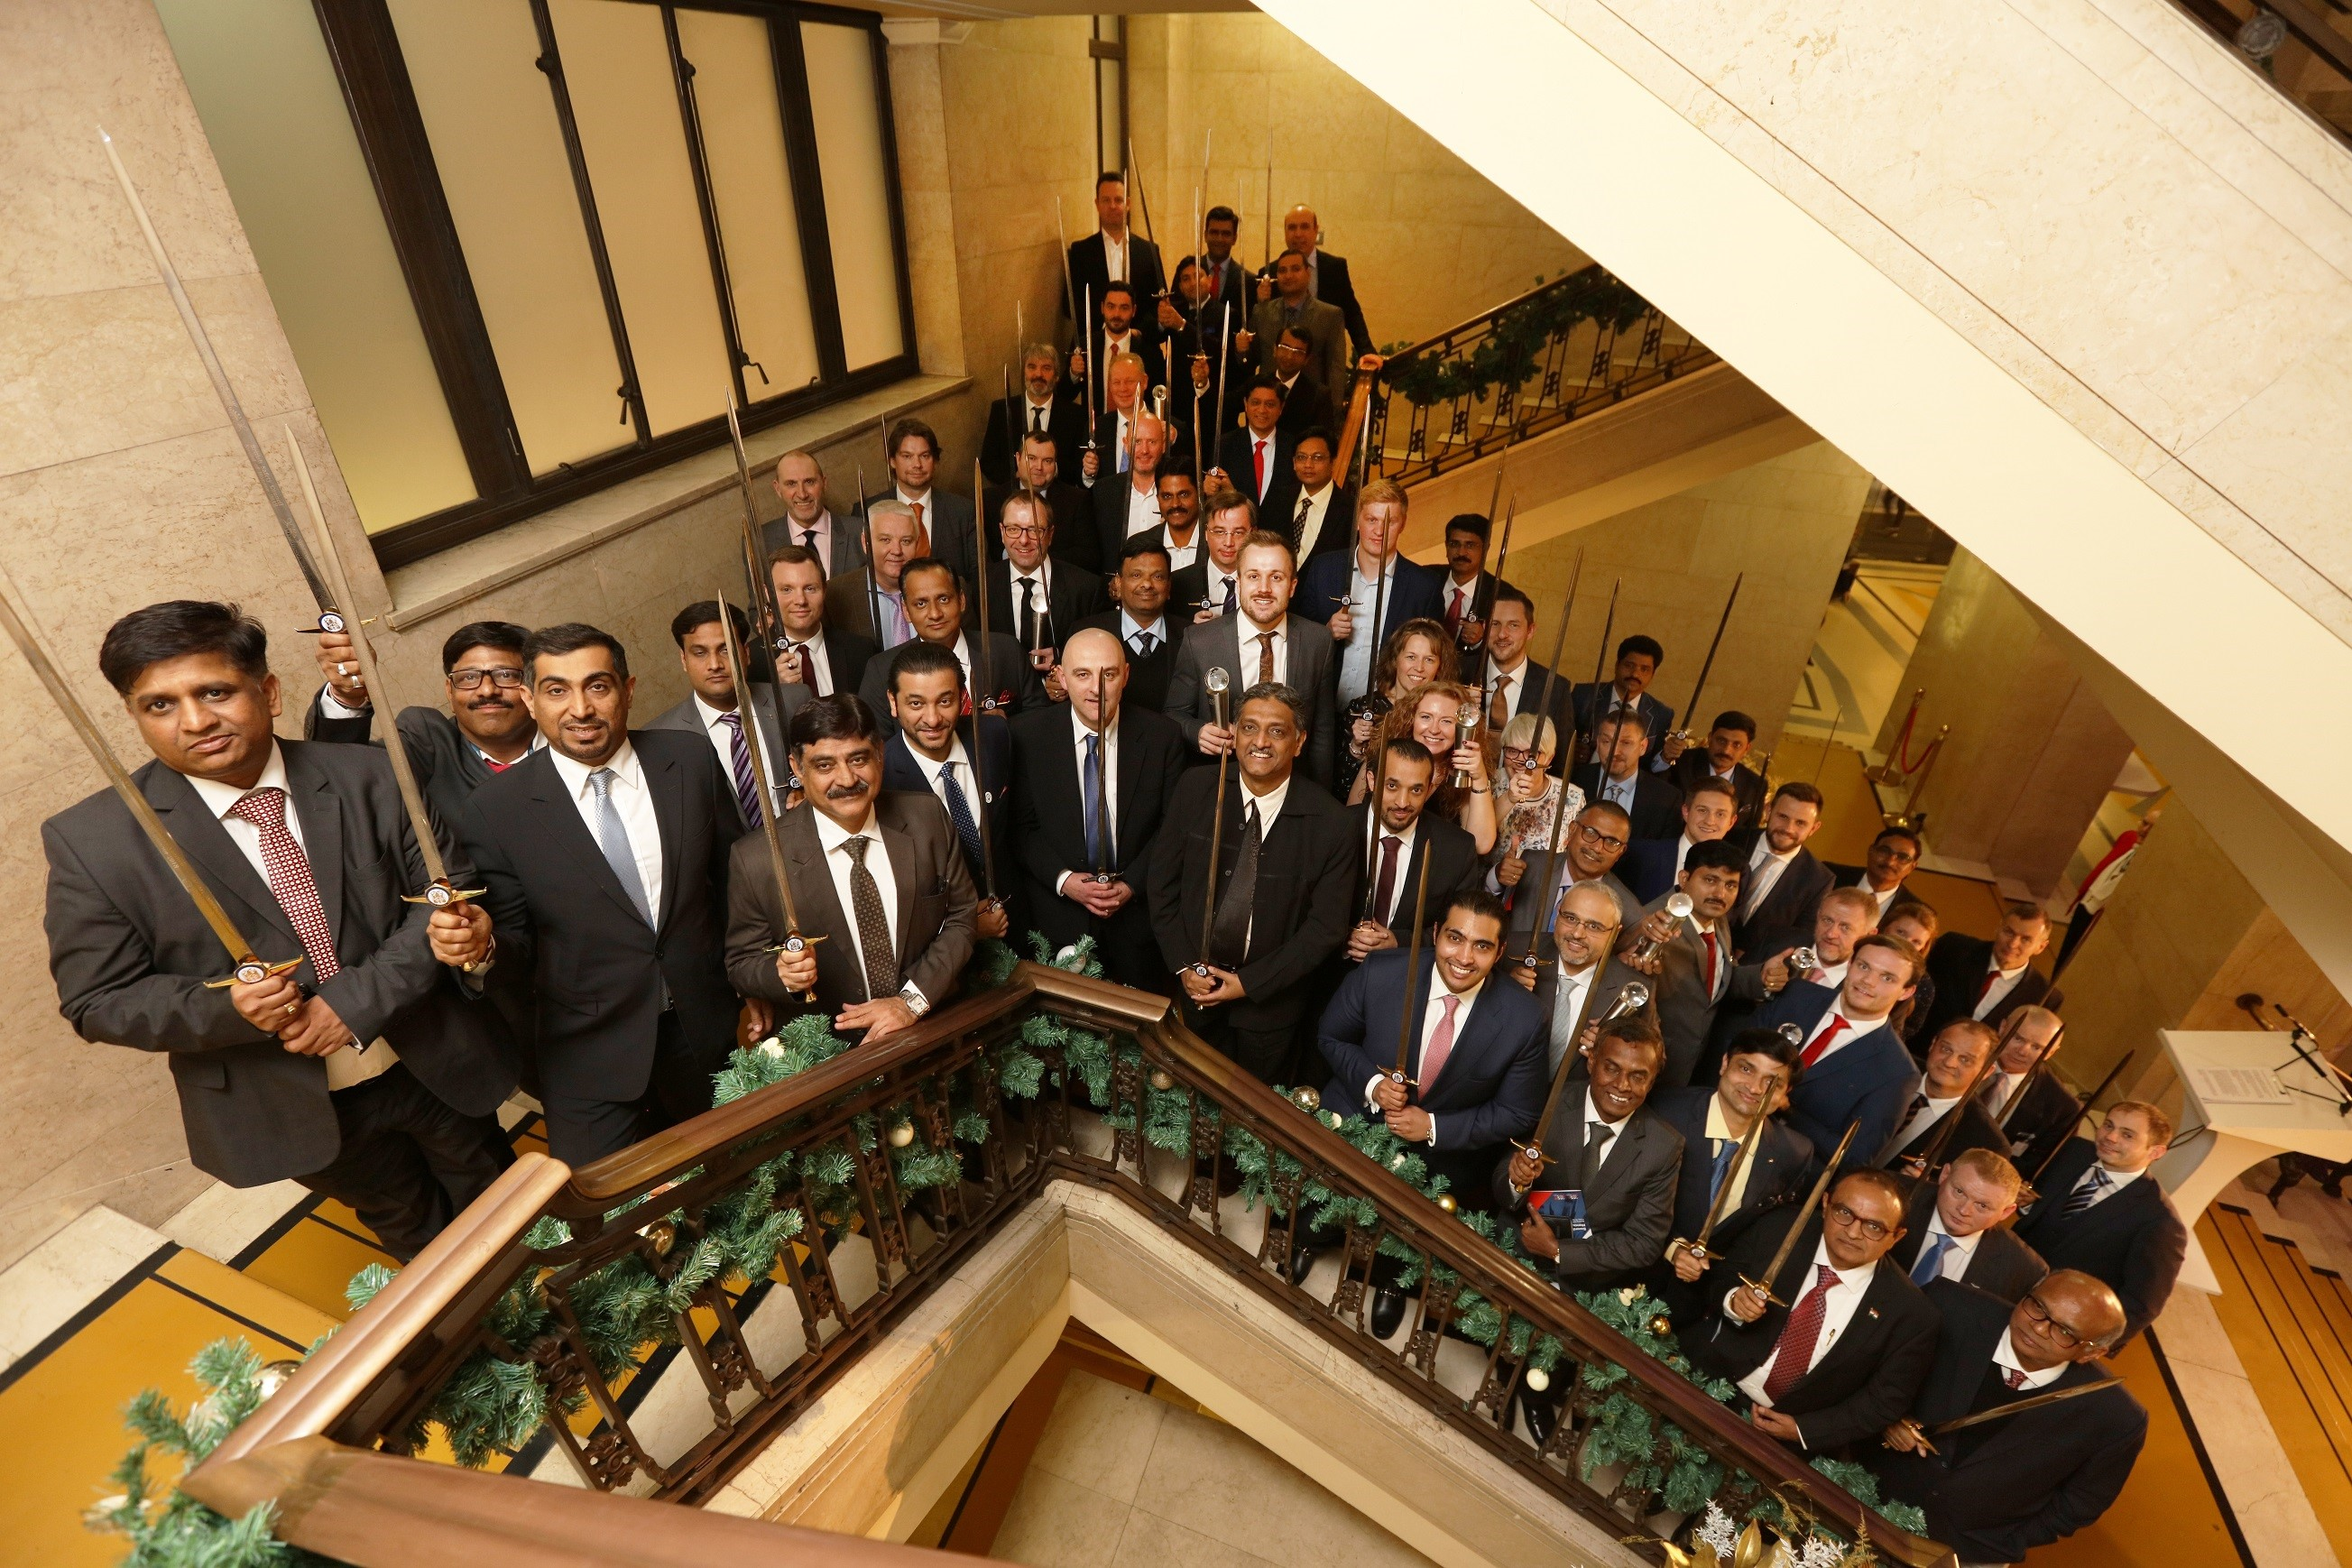 British Safety Council Sword of Honour group photo